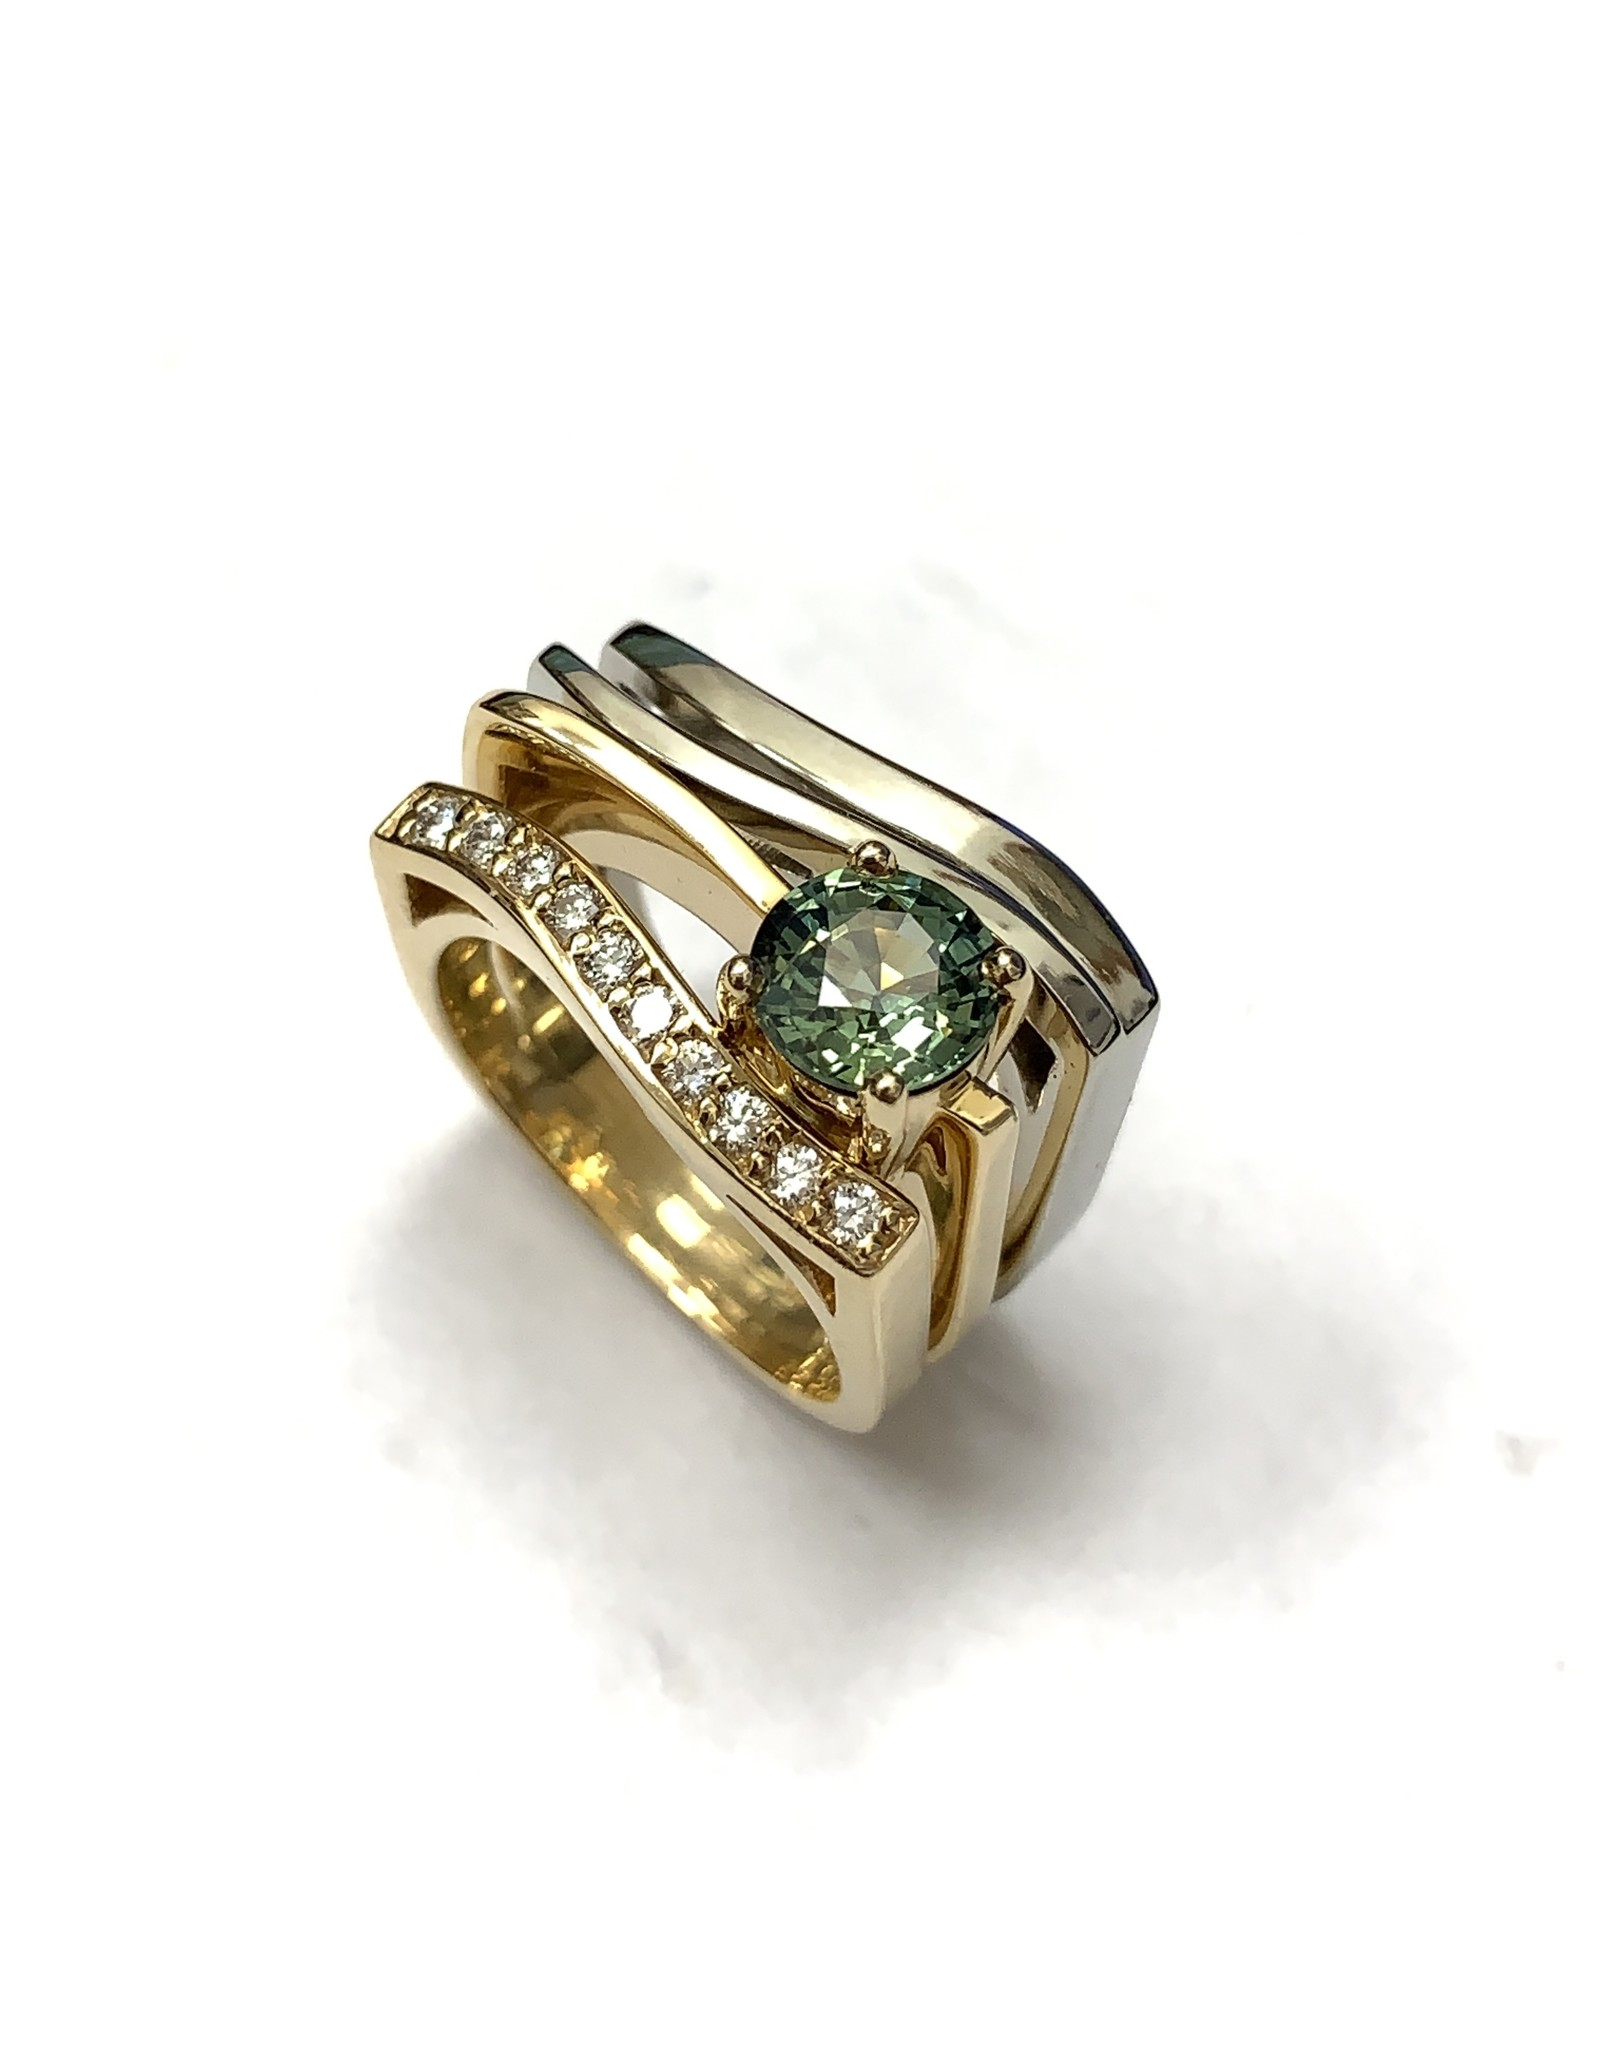 Contemporay Green Sapphire & Diamond Ring 14KWY